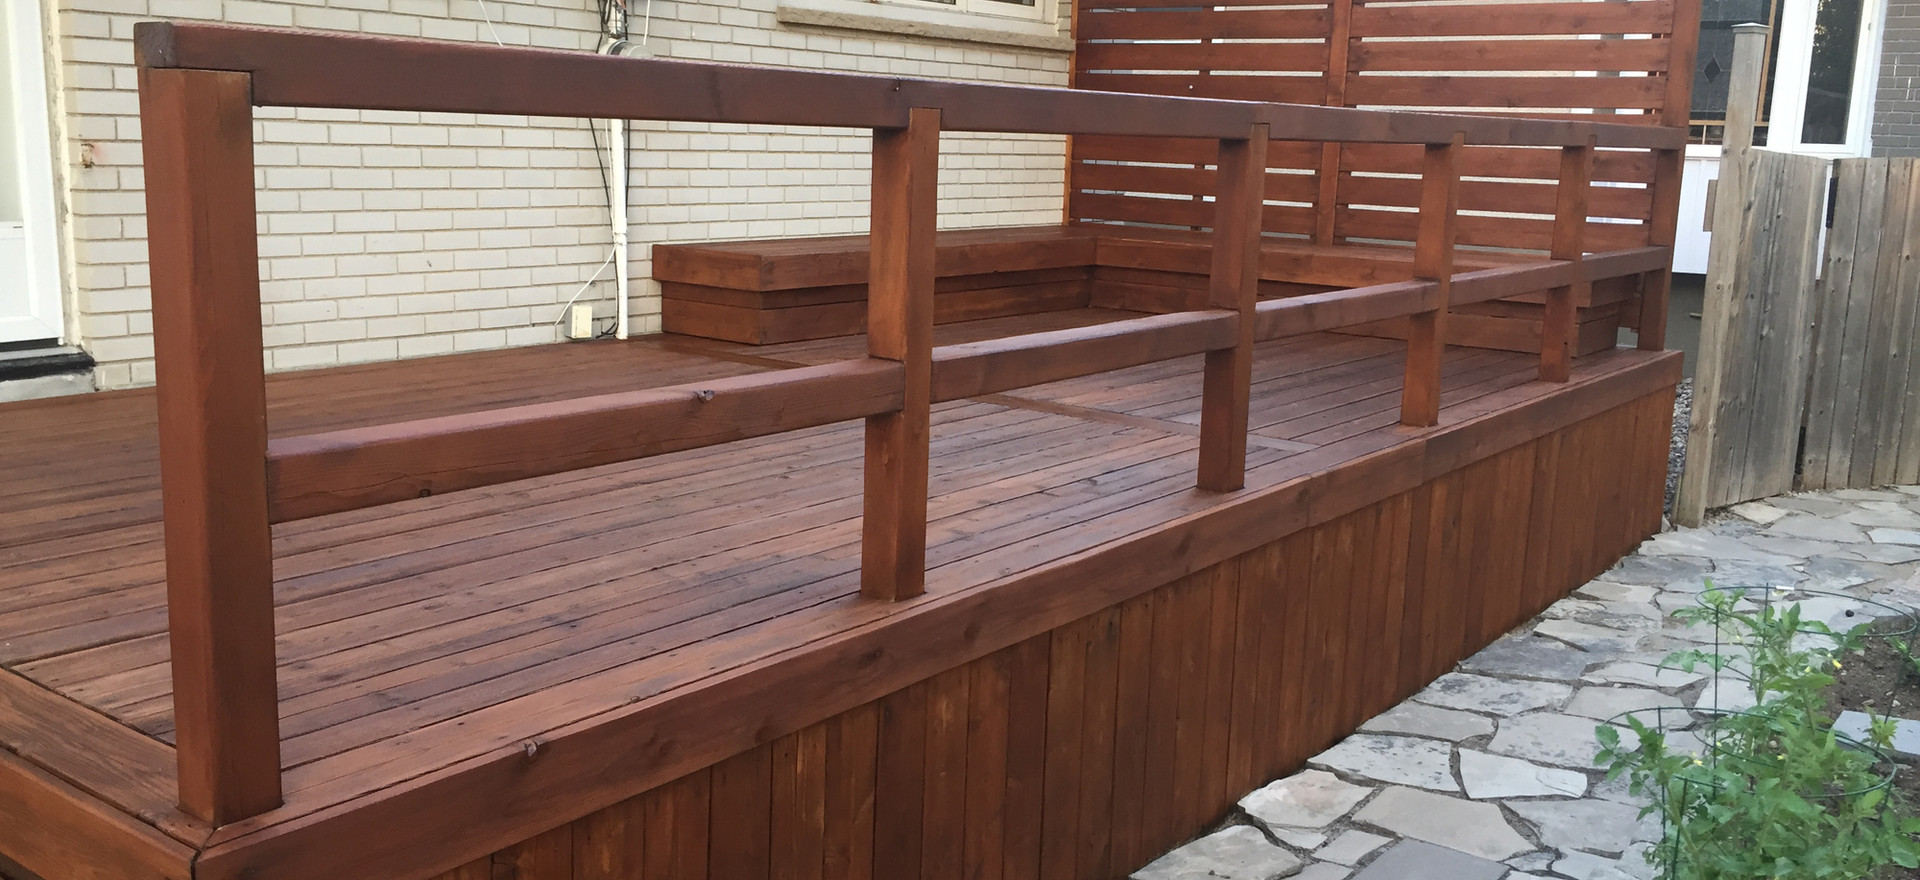 Restored Weathered  Deck - Champagne